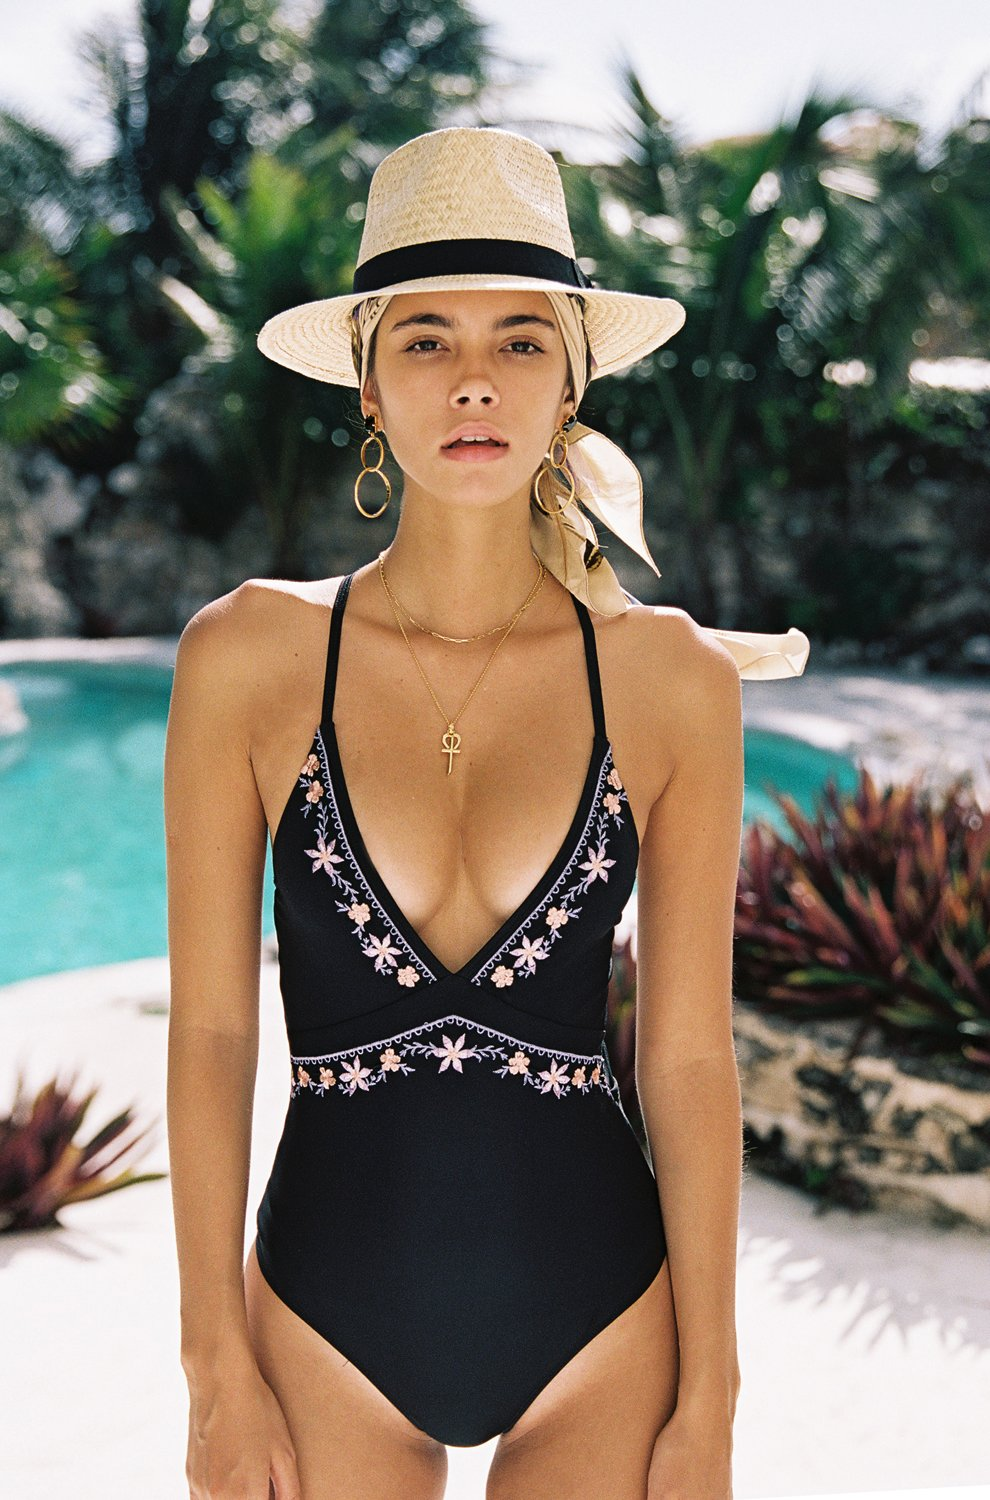 M&M 2019 New Hand Embroidery flower sexy One Piece Swimwear Women Deep V-neck Bathing Suit Beach Backless Swimsuit офисное приложение ms office 365 personal rus subscr 1yr no skype коробка qq2 00595